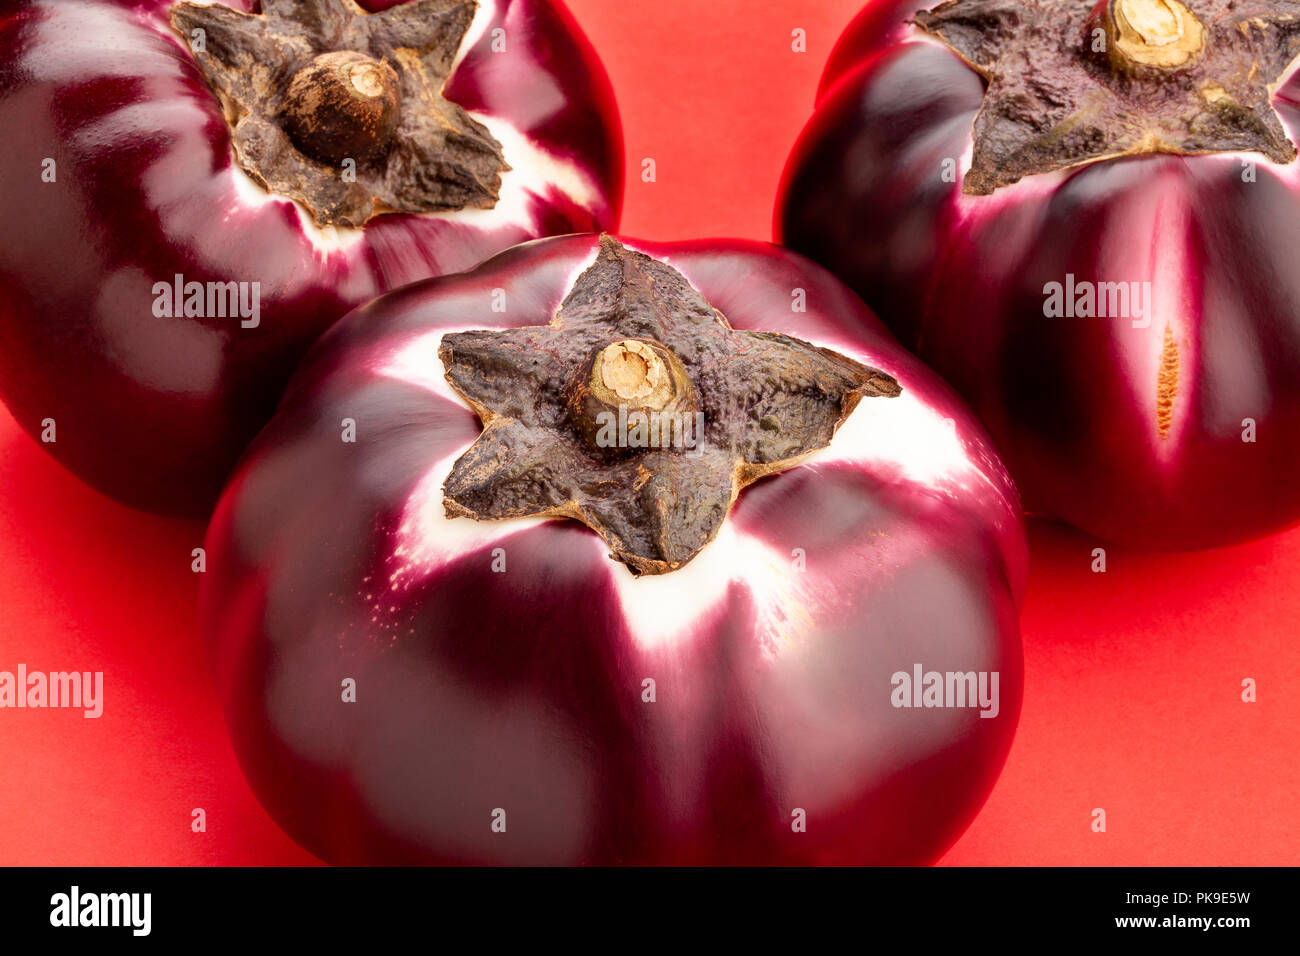 round mauve eggplant on red background - Stock Image